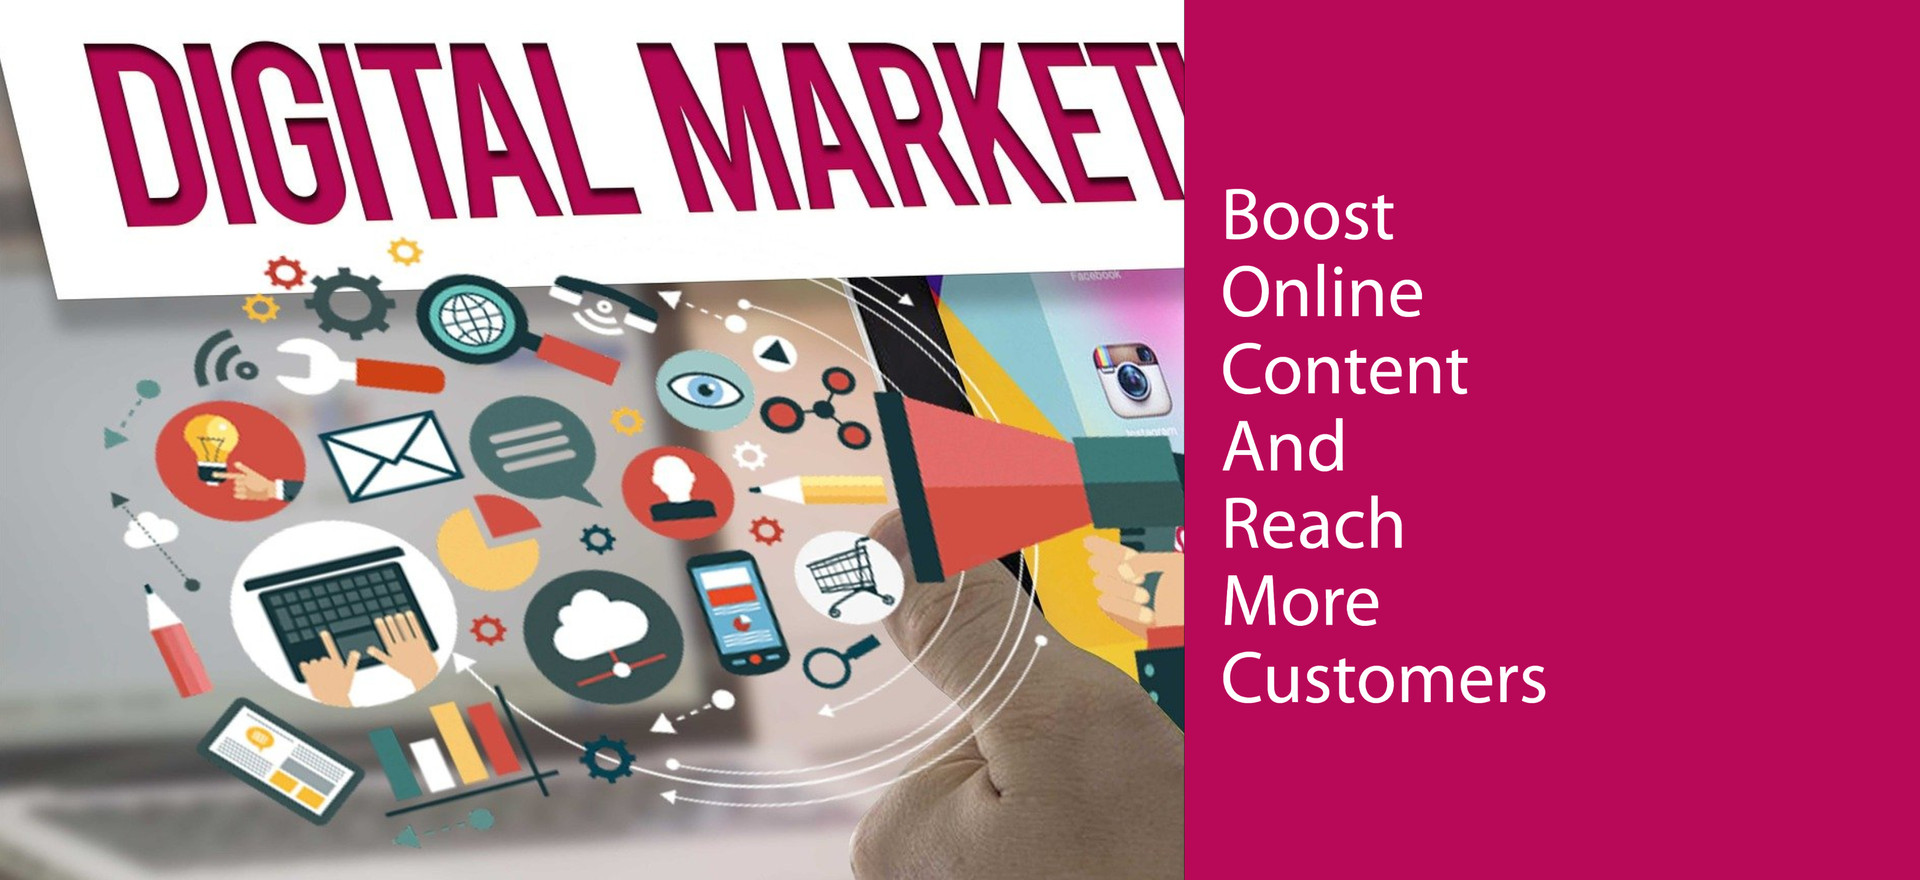 Boost Your Content and Reach More Customers